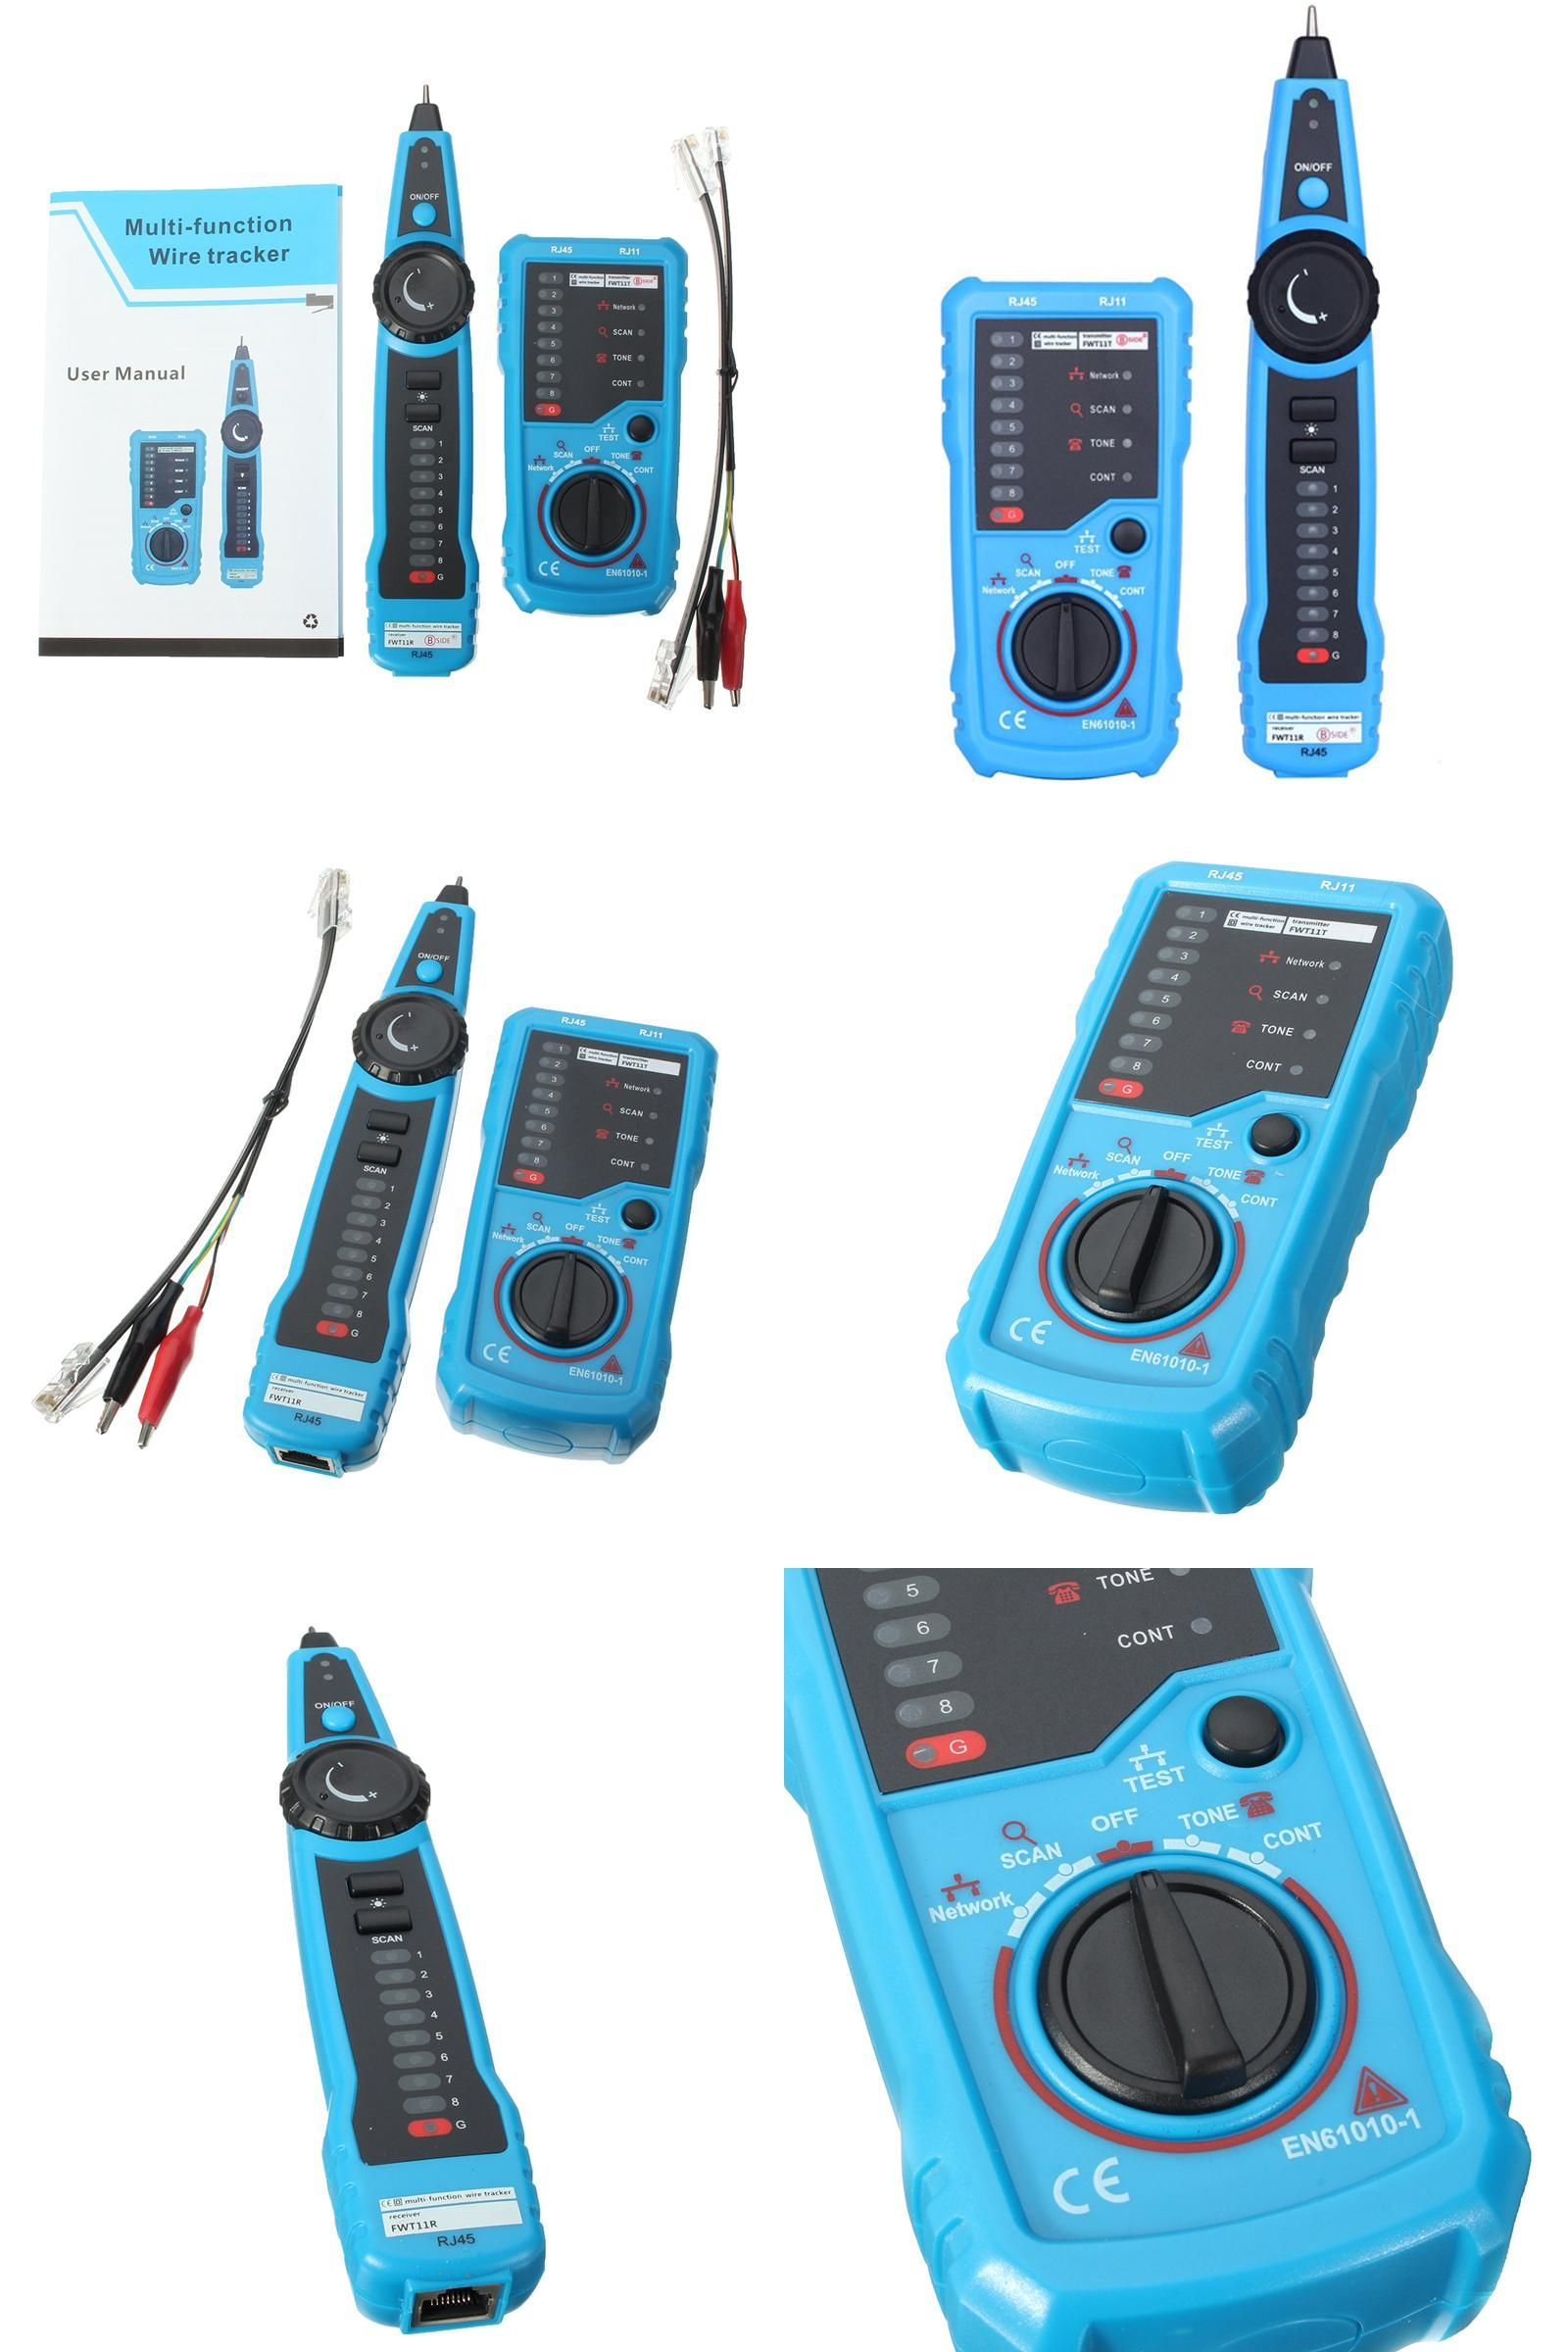 Computer Cables USB Cable RJ45 and RJ11 Multifunction Network Cable Tester Network Cables